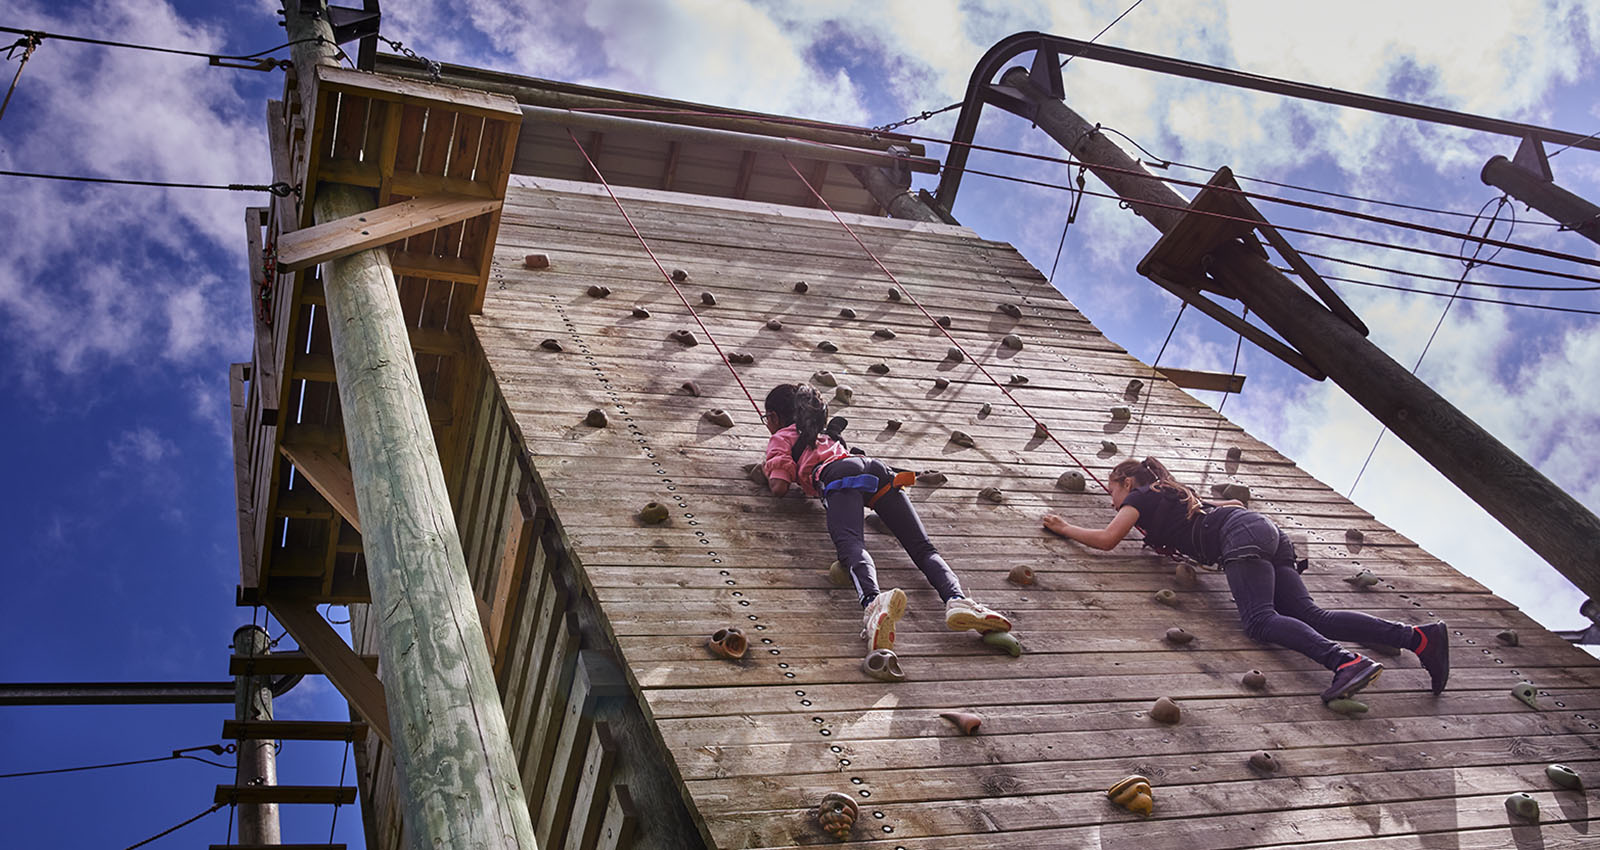 PGL Adventure Holidays - Specialist Holidays for 7-17 year olds across the UK - Action and Adventure - Wet and Wild